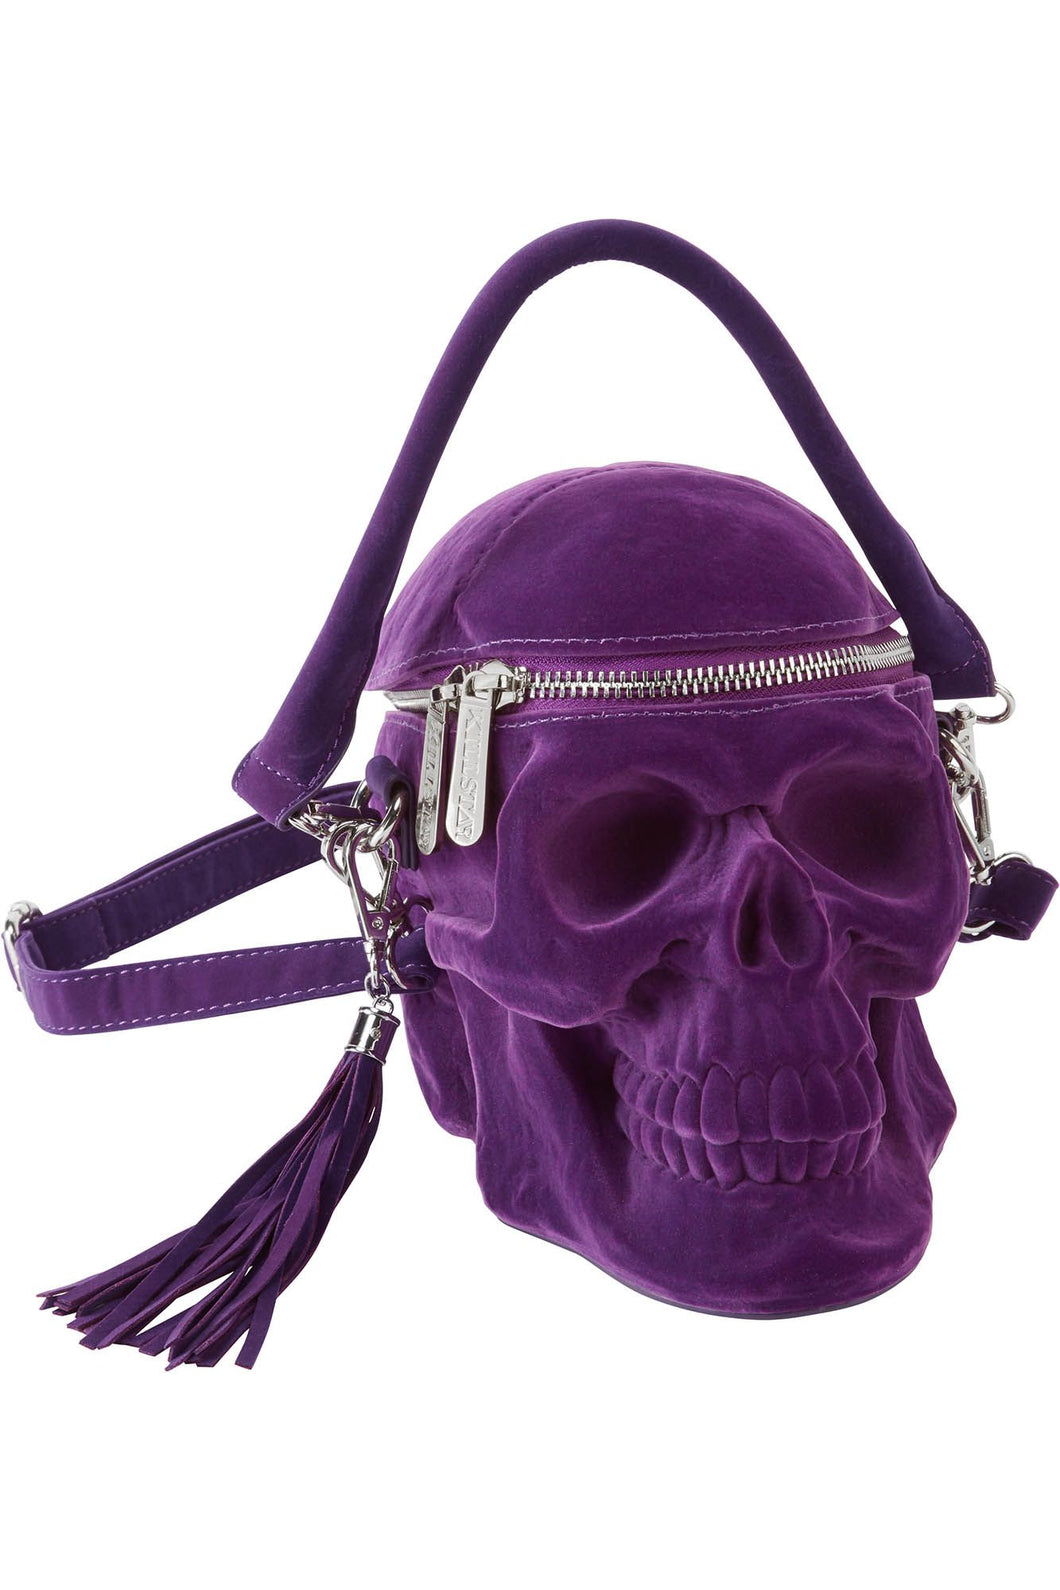 Killstar Grave Digger Plum Velvet Skull Handbag - Kate's Clothing